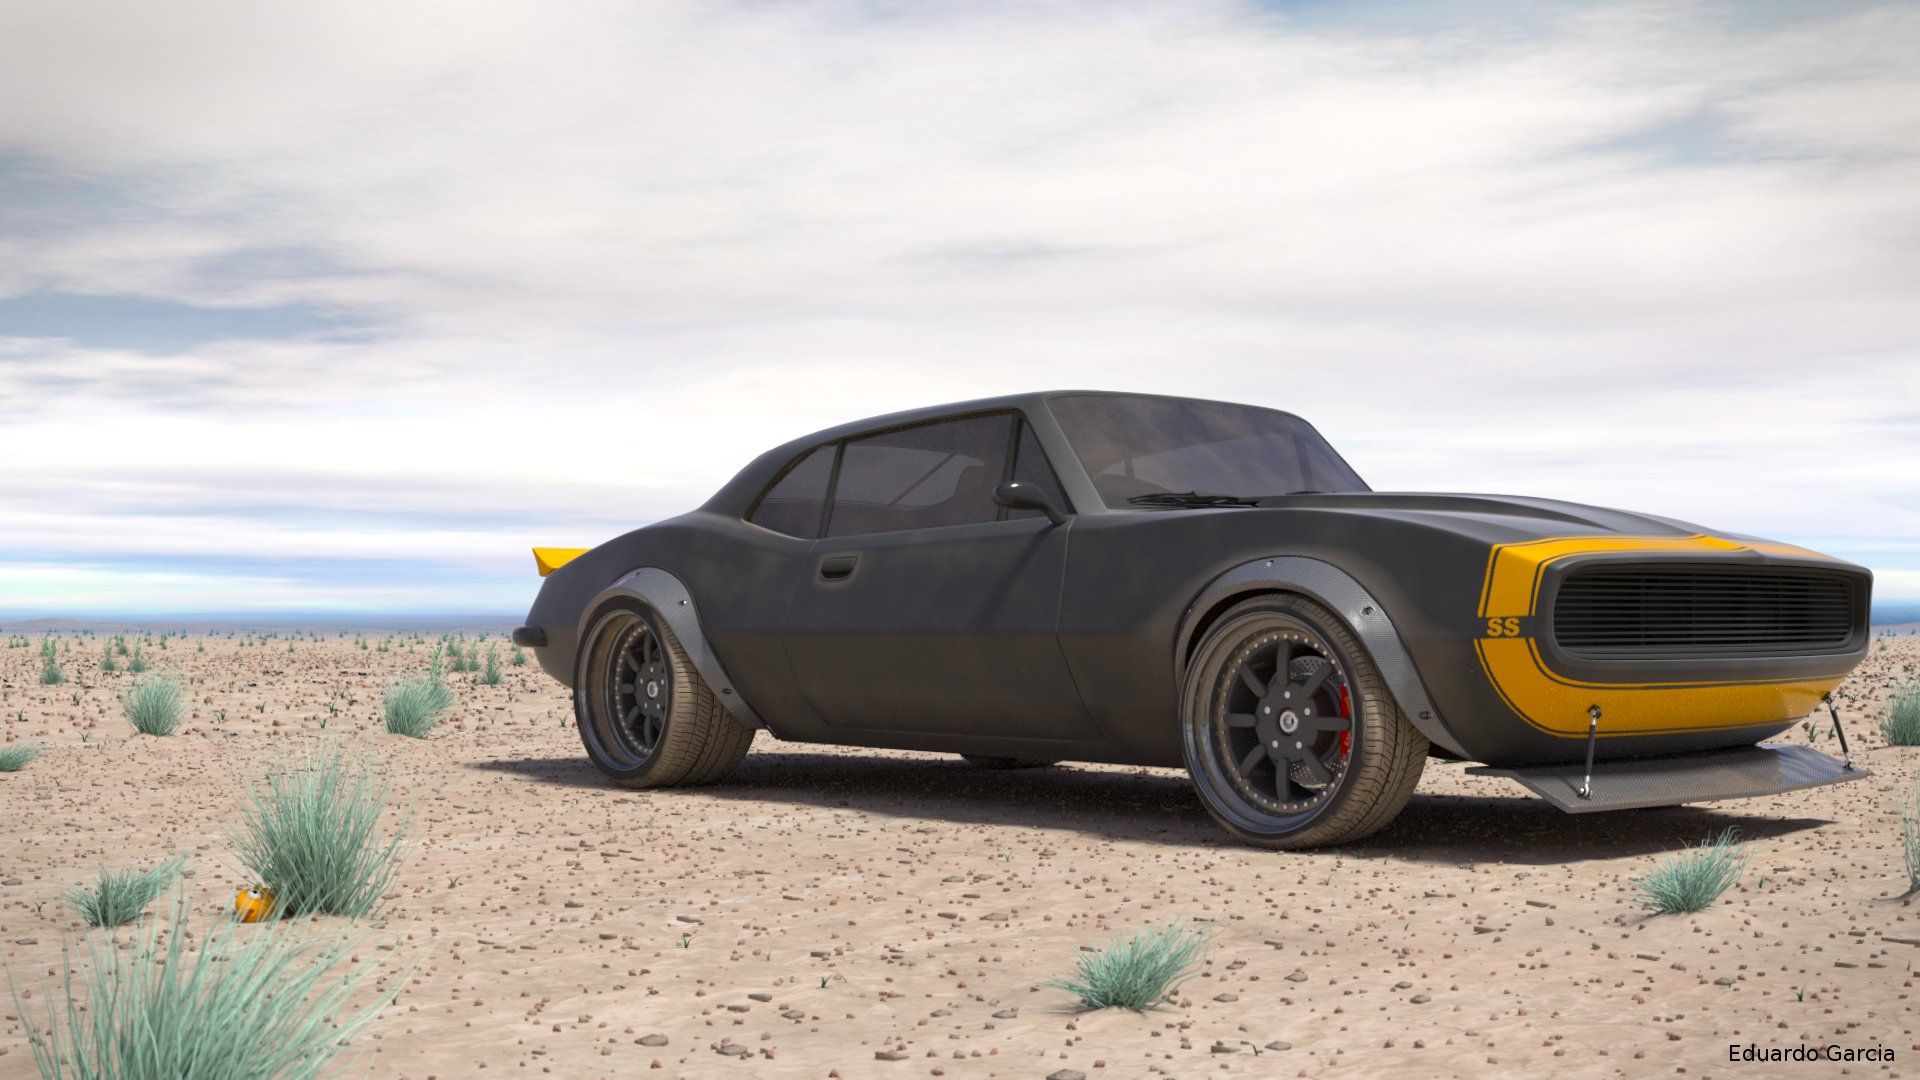 camaro 67 - finished projects - blender artists community